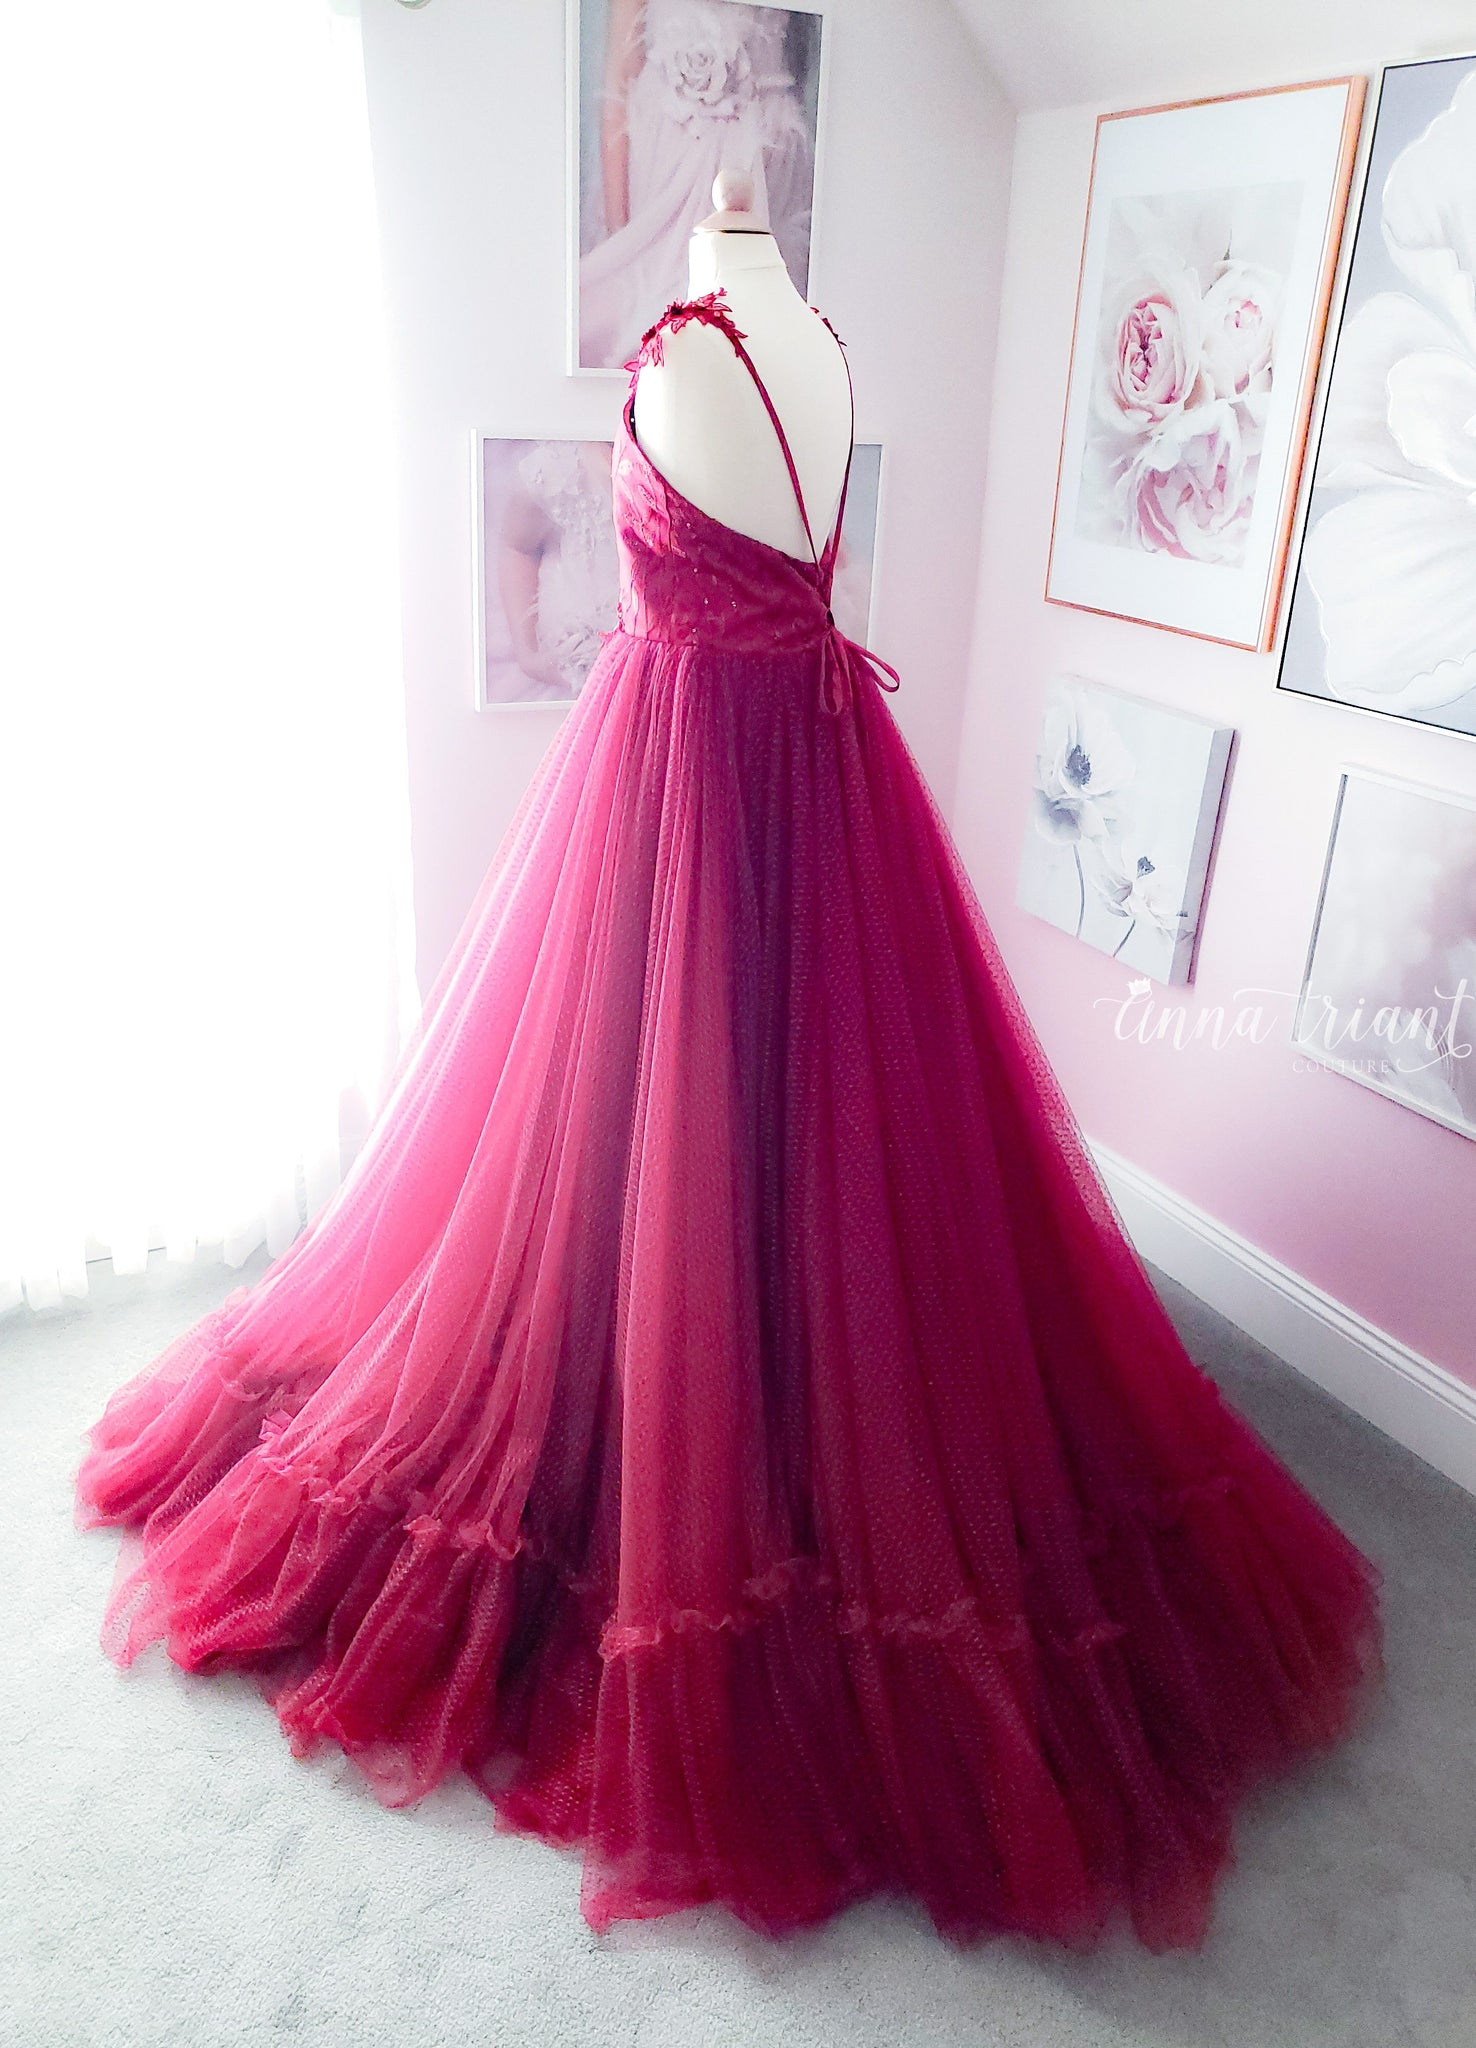 Crimson Poise Gown and Cape